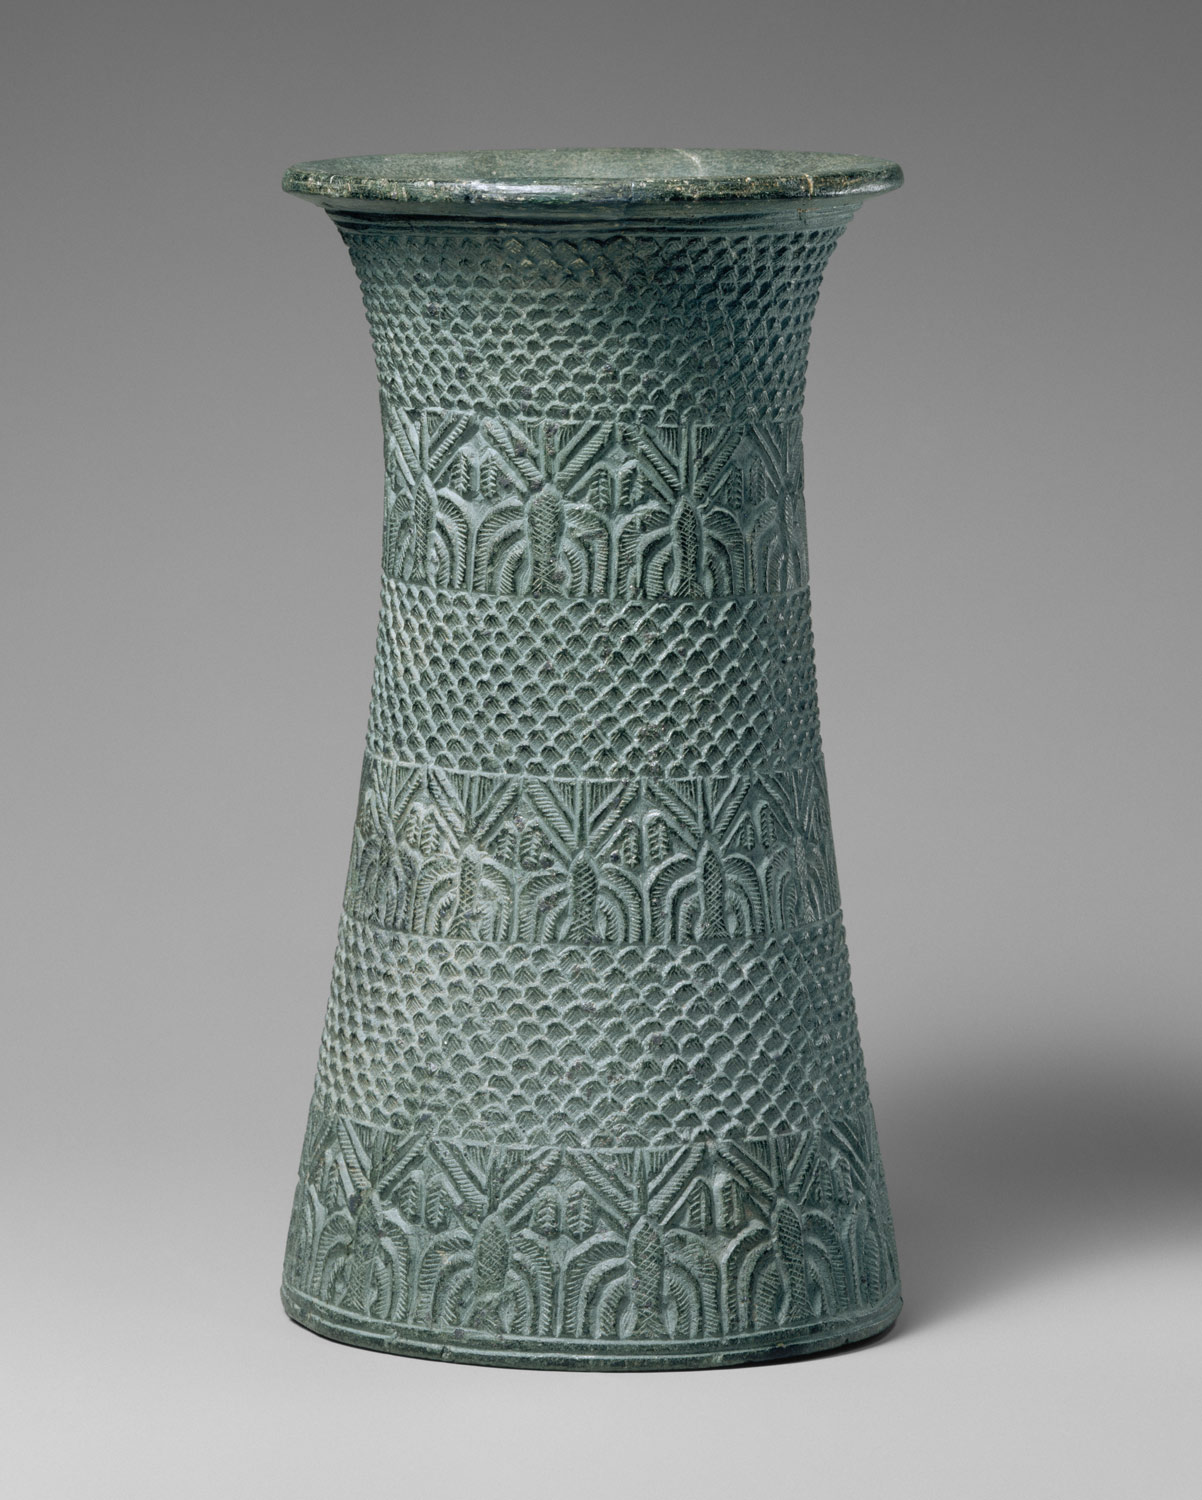 Vase with overlapping pattern and three bands of palm trees